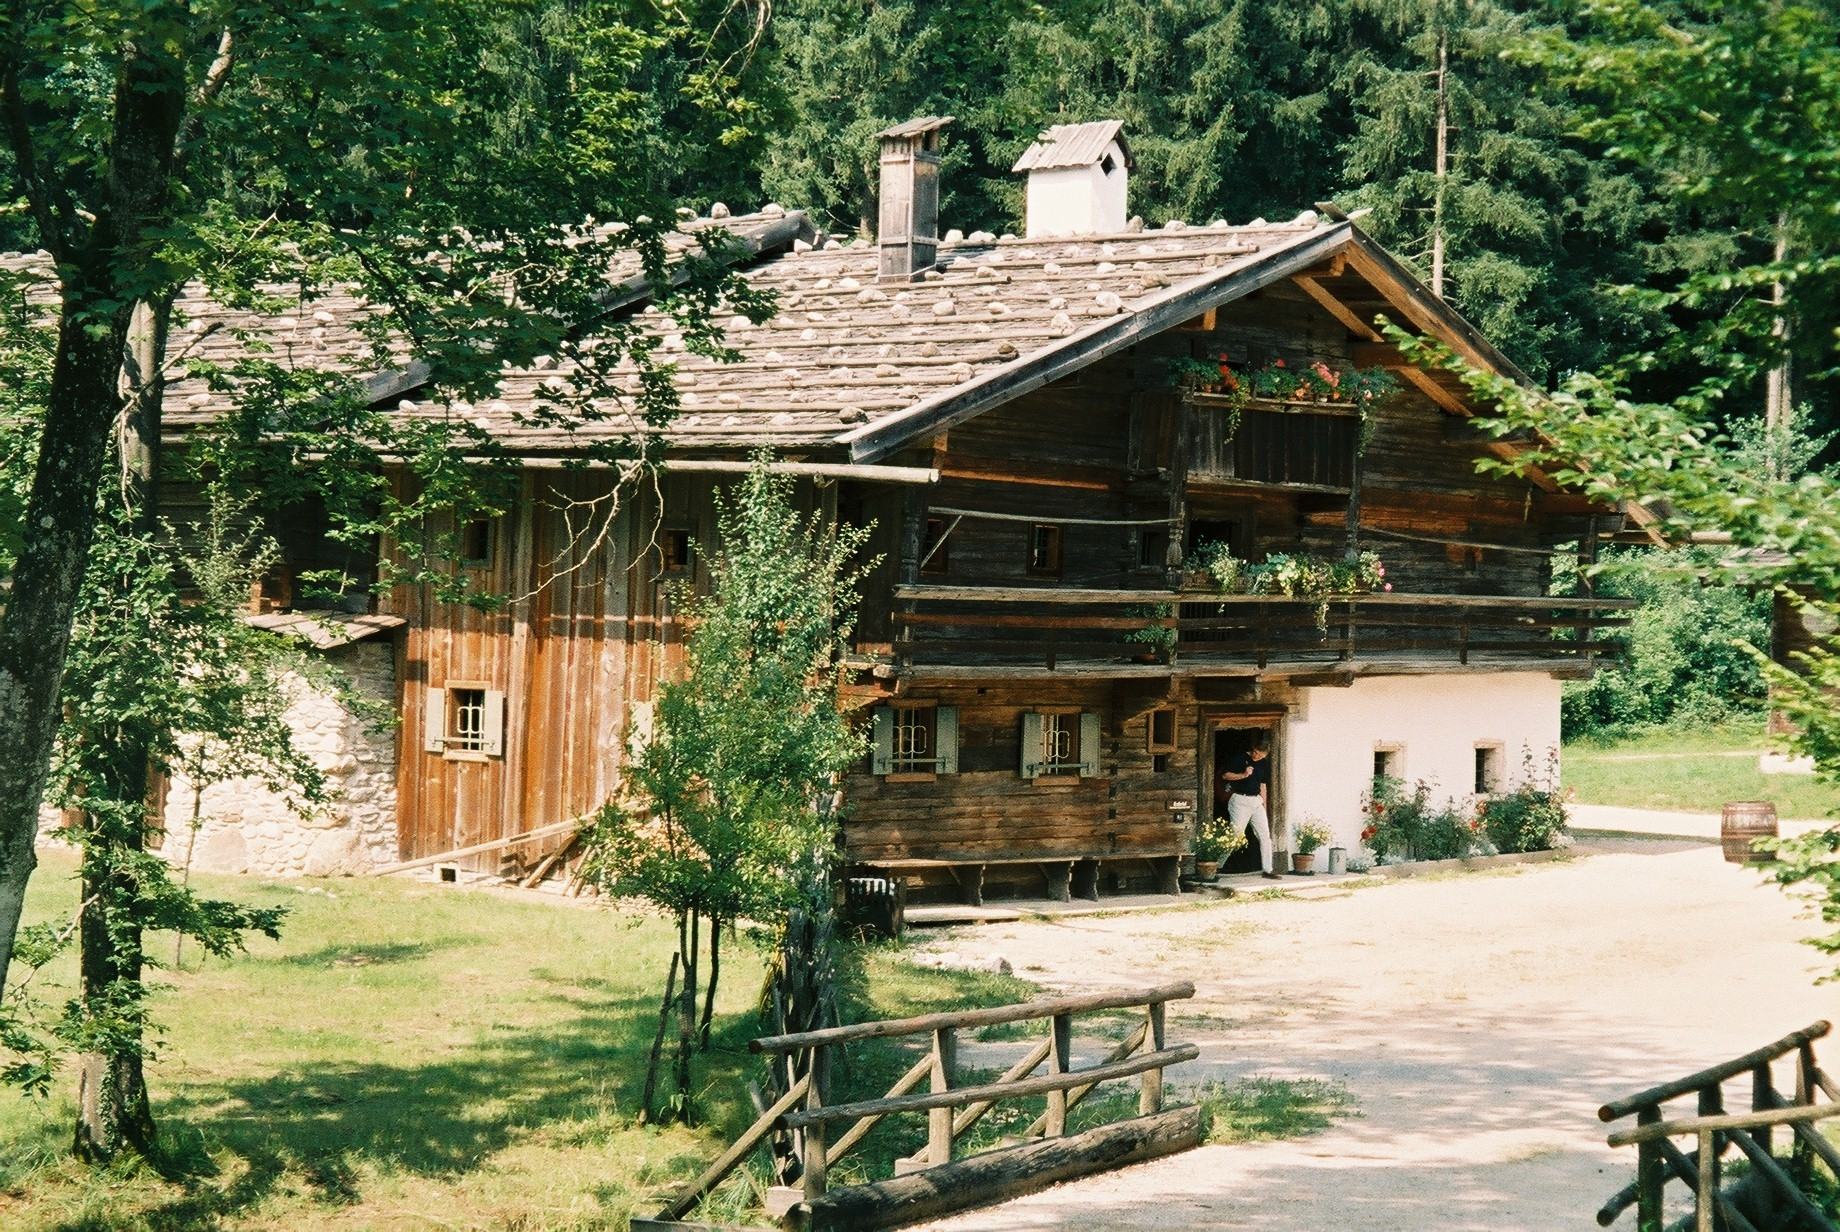 File:Farmhouse museum.JPG - Wikimedia Commons